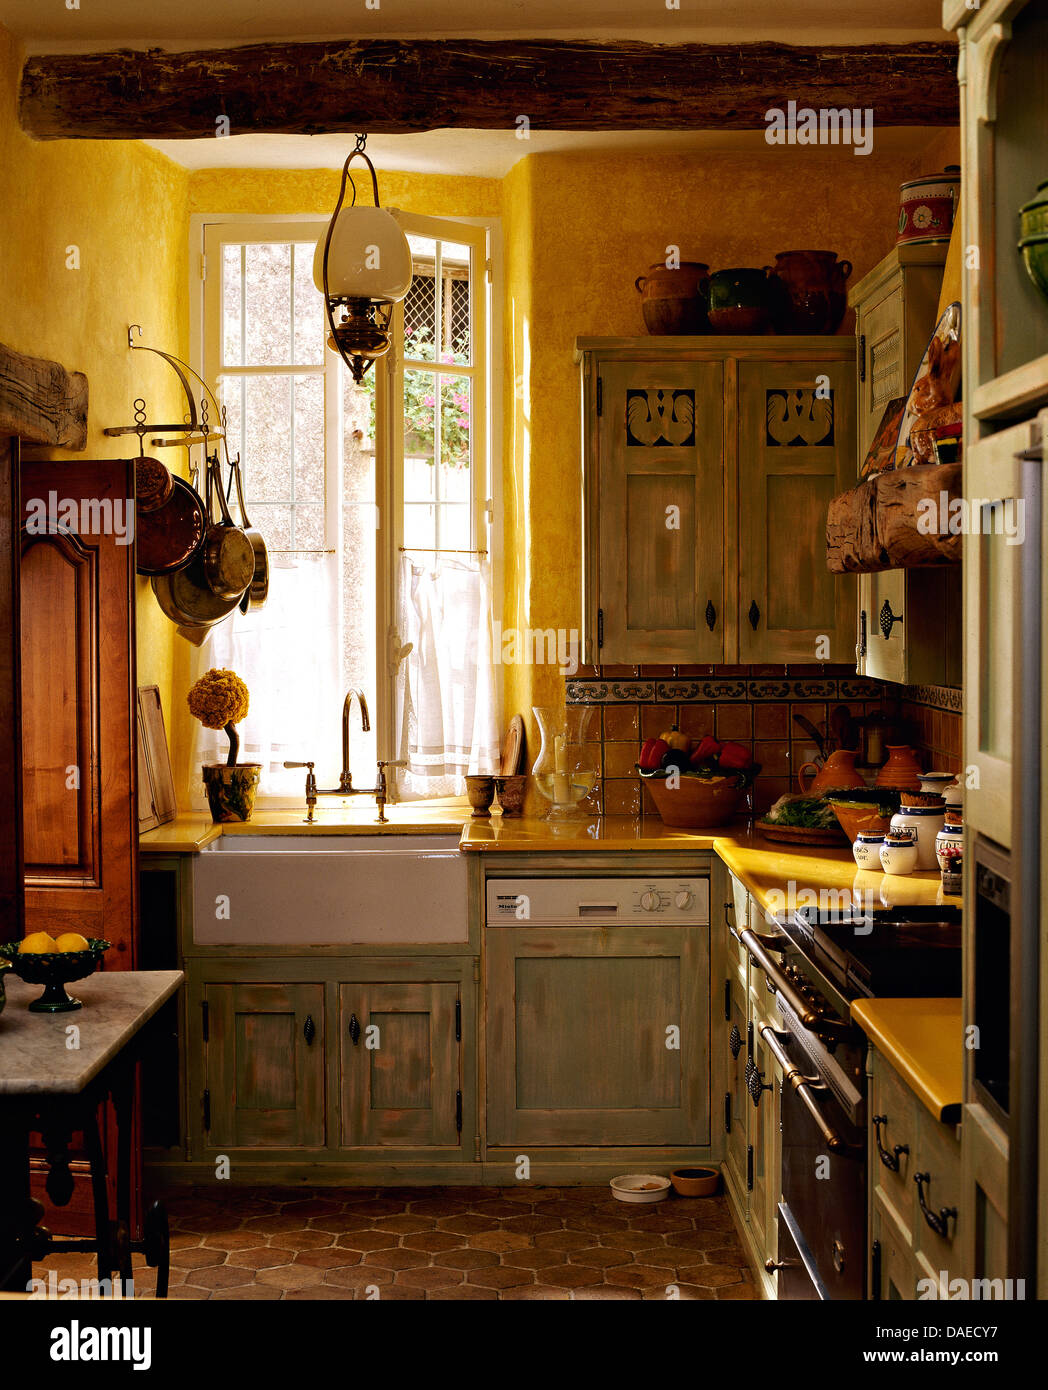 french country kitchens kitchen hood sale pale gray green distressed cupboards in yellow with terracotta tiled floor and belfast sink